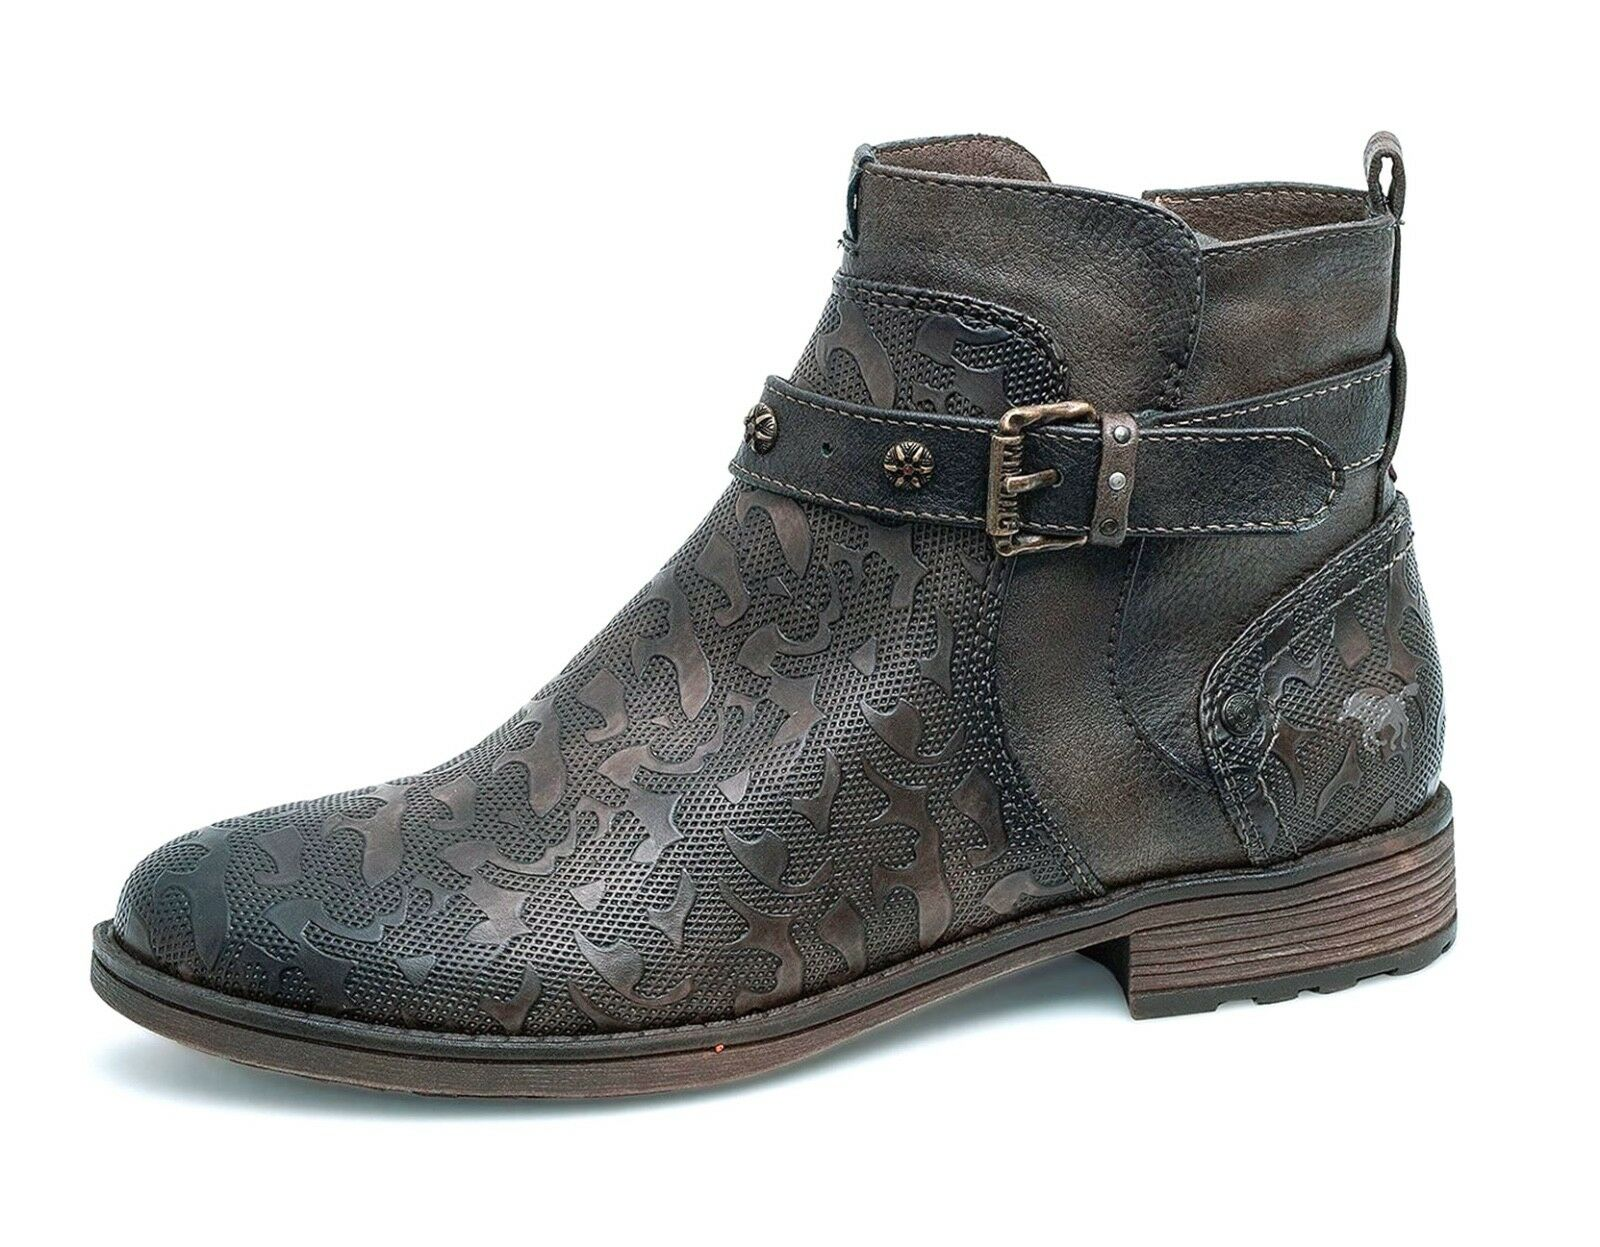 Mustang NEW 1265-515 marron texturouge western style low heel ankle bottes Taille 4-8